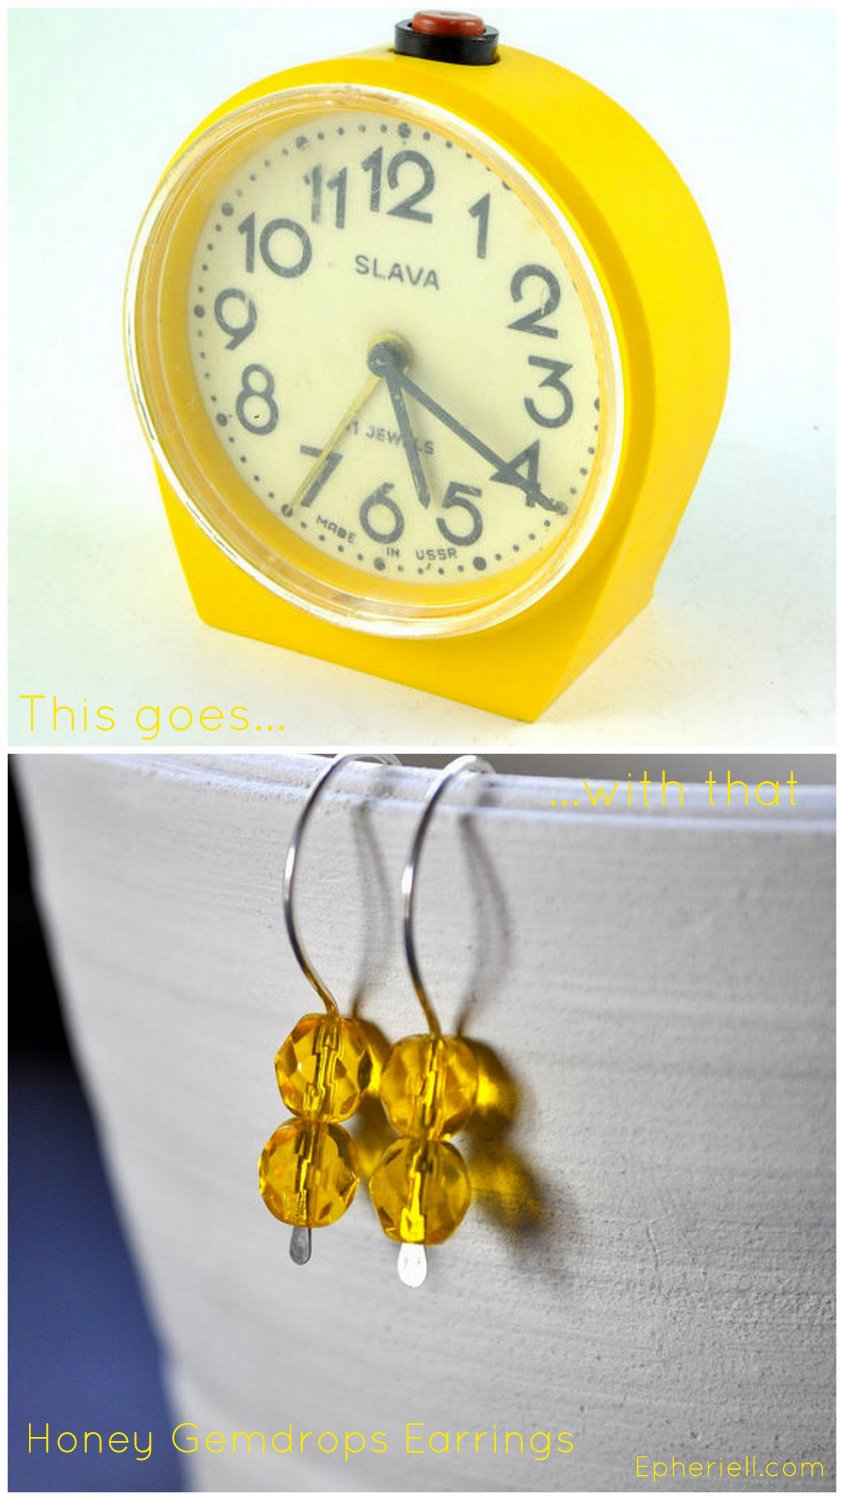 {This Goes With That} Honey Gemdrops Earrings